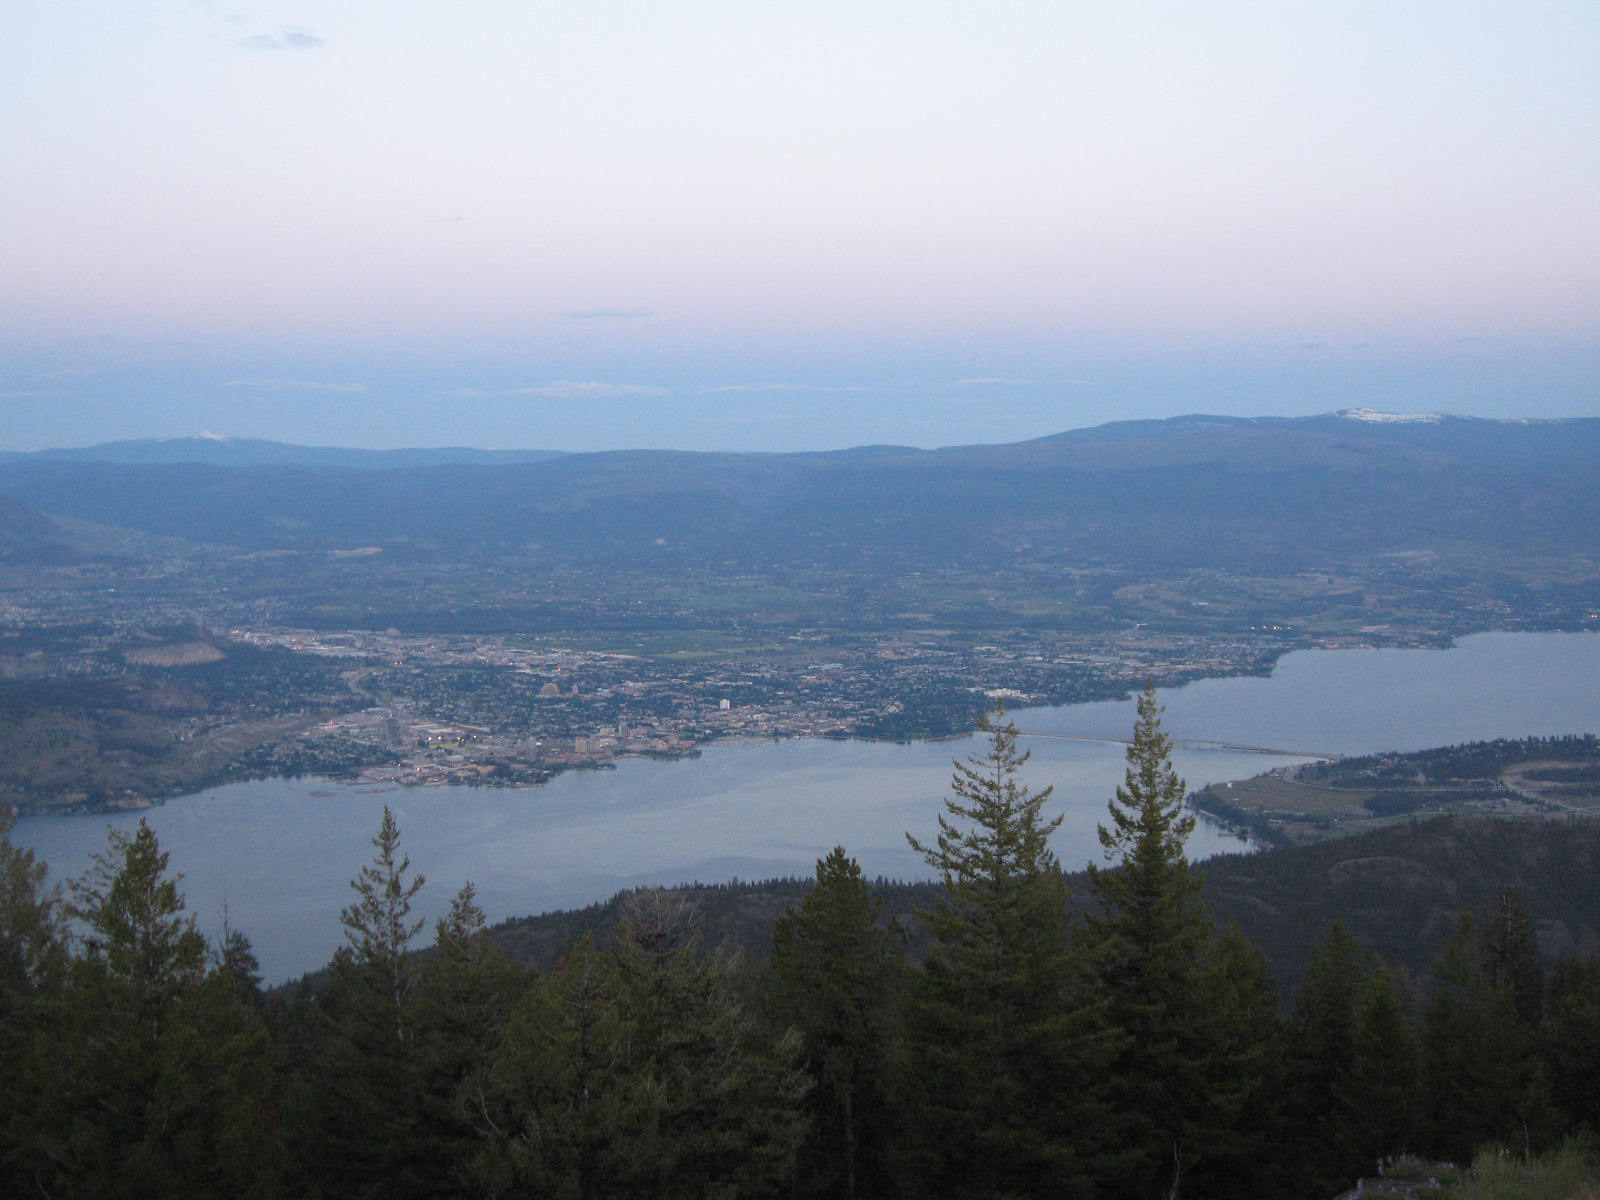 Lake Okanagan view from Mount Hayman